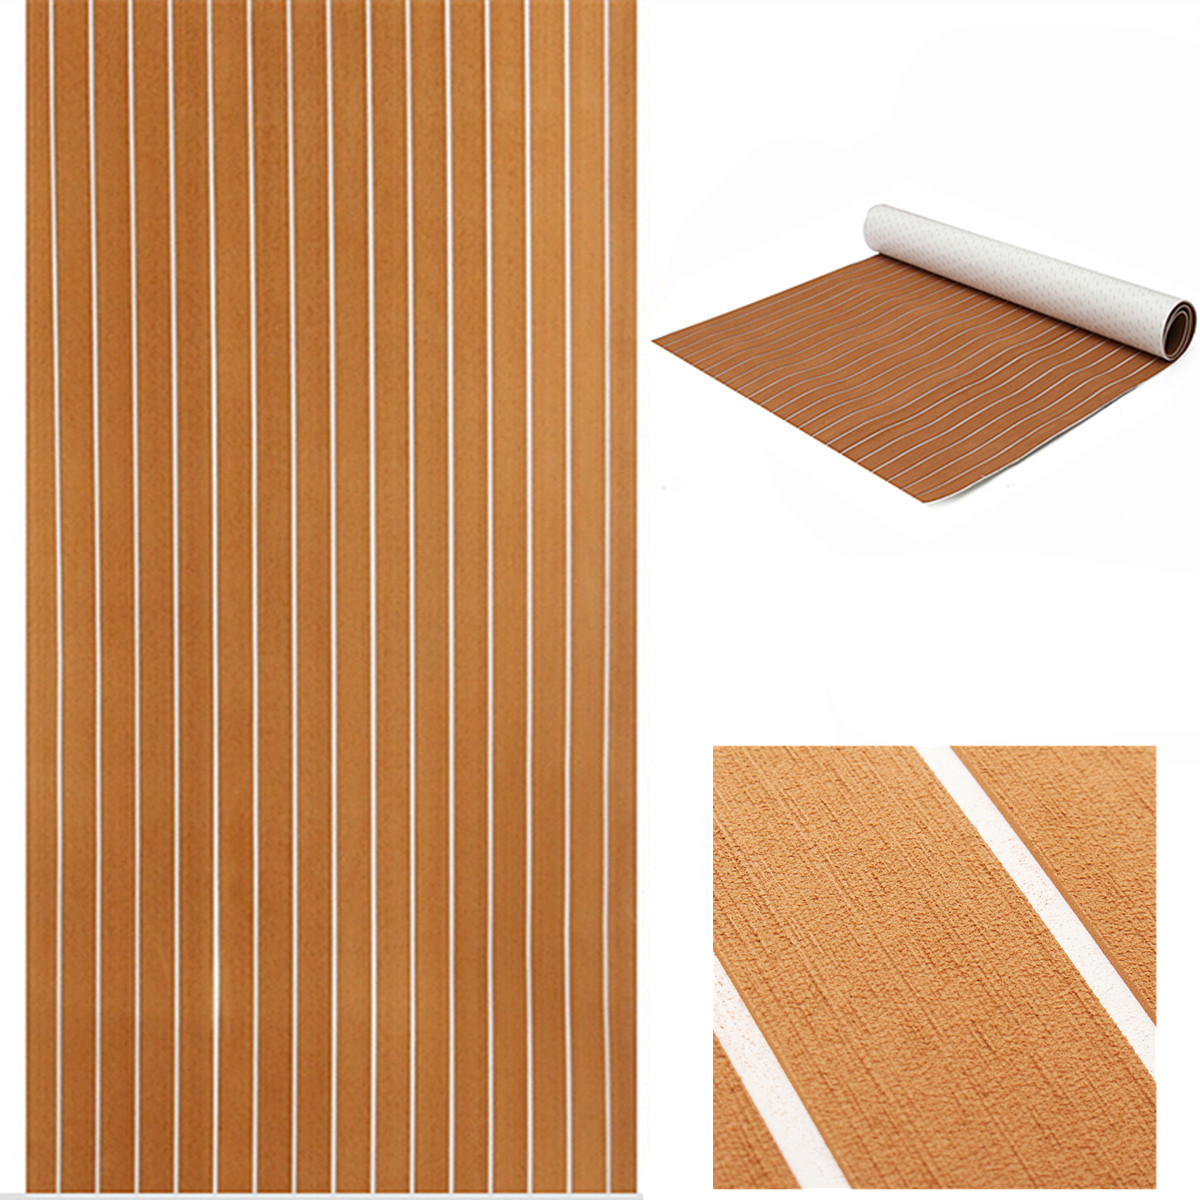 120x240cm 5mm Self Adhesive Teak Boat Decking Teak Flooring EVA Foam Teak Sheet Marine Car Yacht Floor Mat Synthetic Teak Pad teak house свеча damask pineapple red